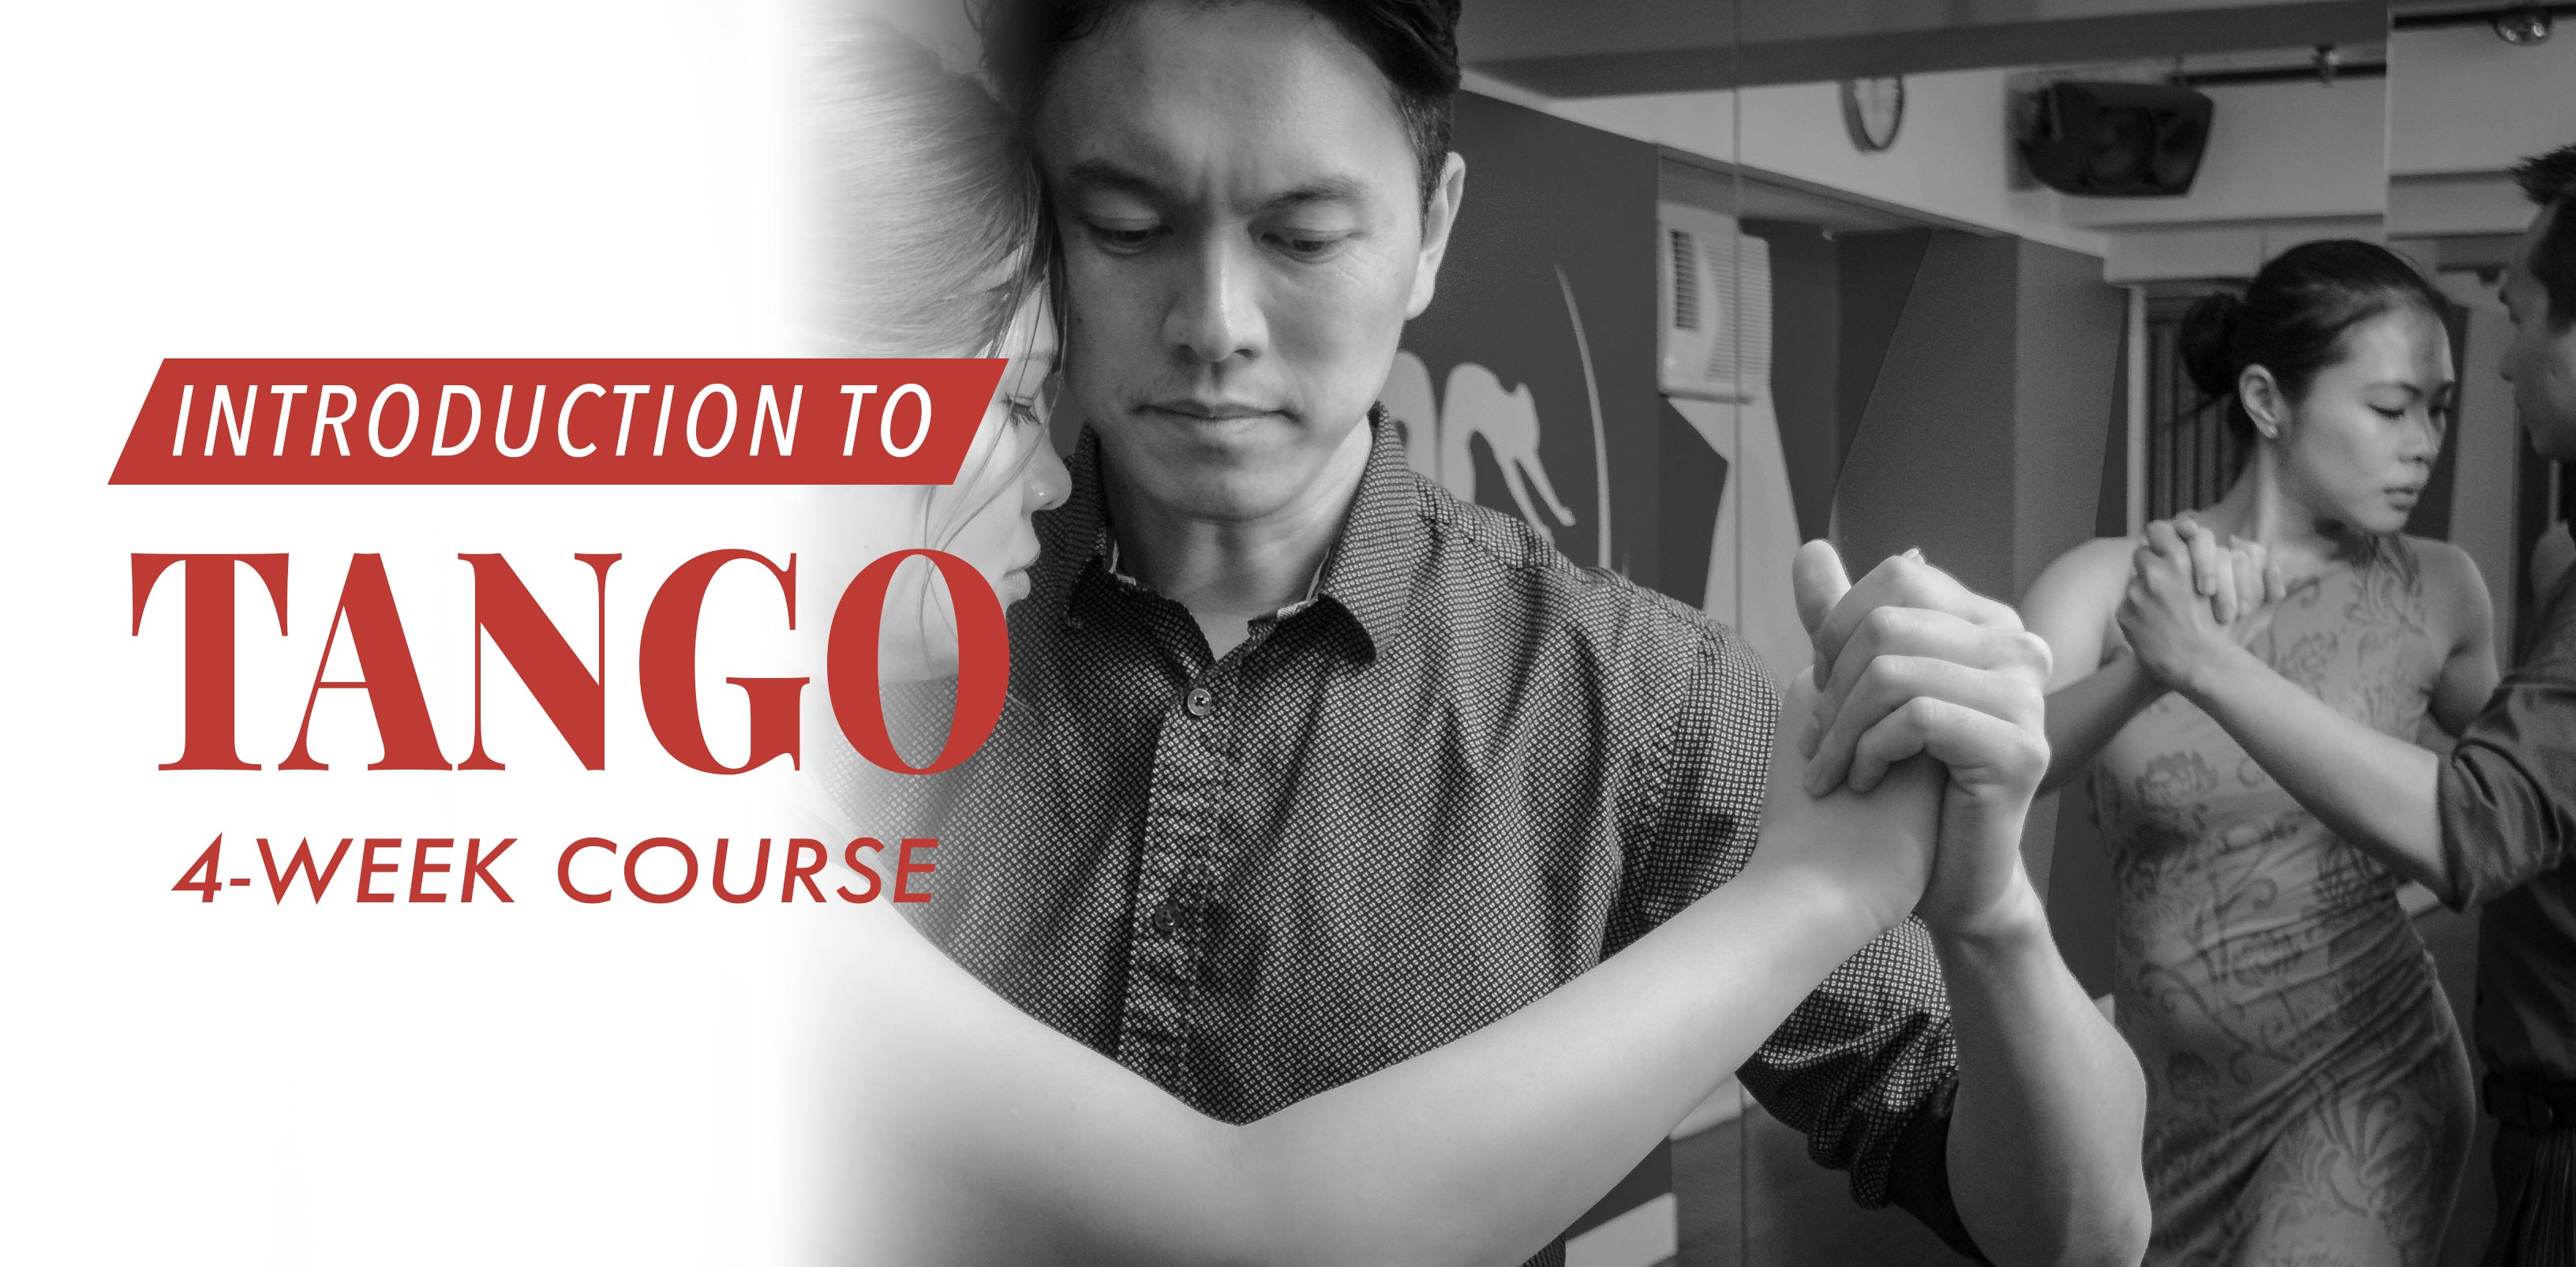 Introduction to TANGO 4-week Course